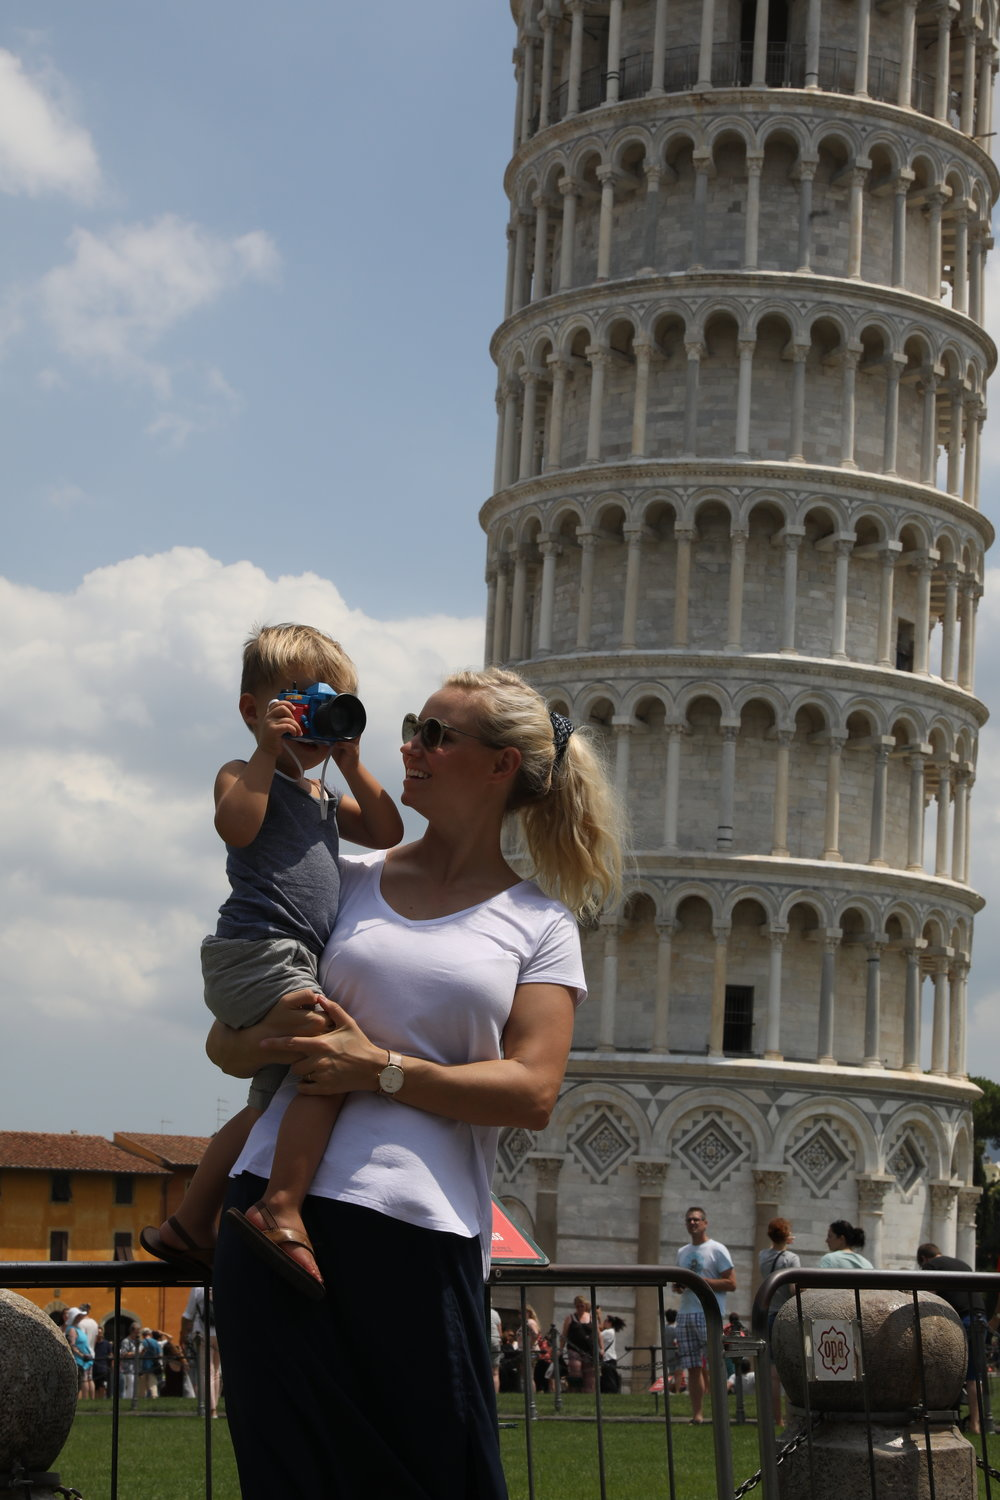 We checked Pisa off our bucket list this week.  Such a fascinating and cute little Italian town.